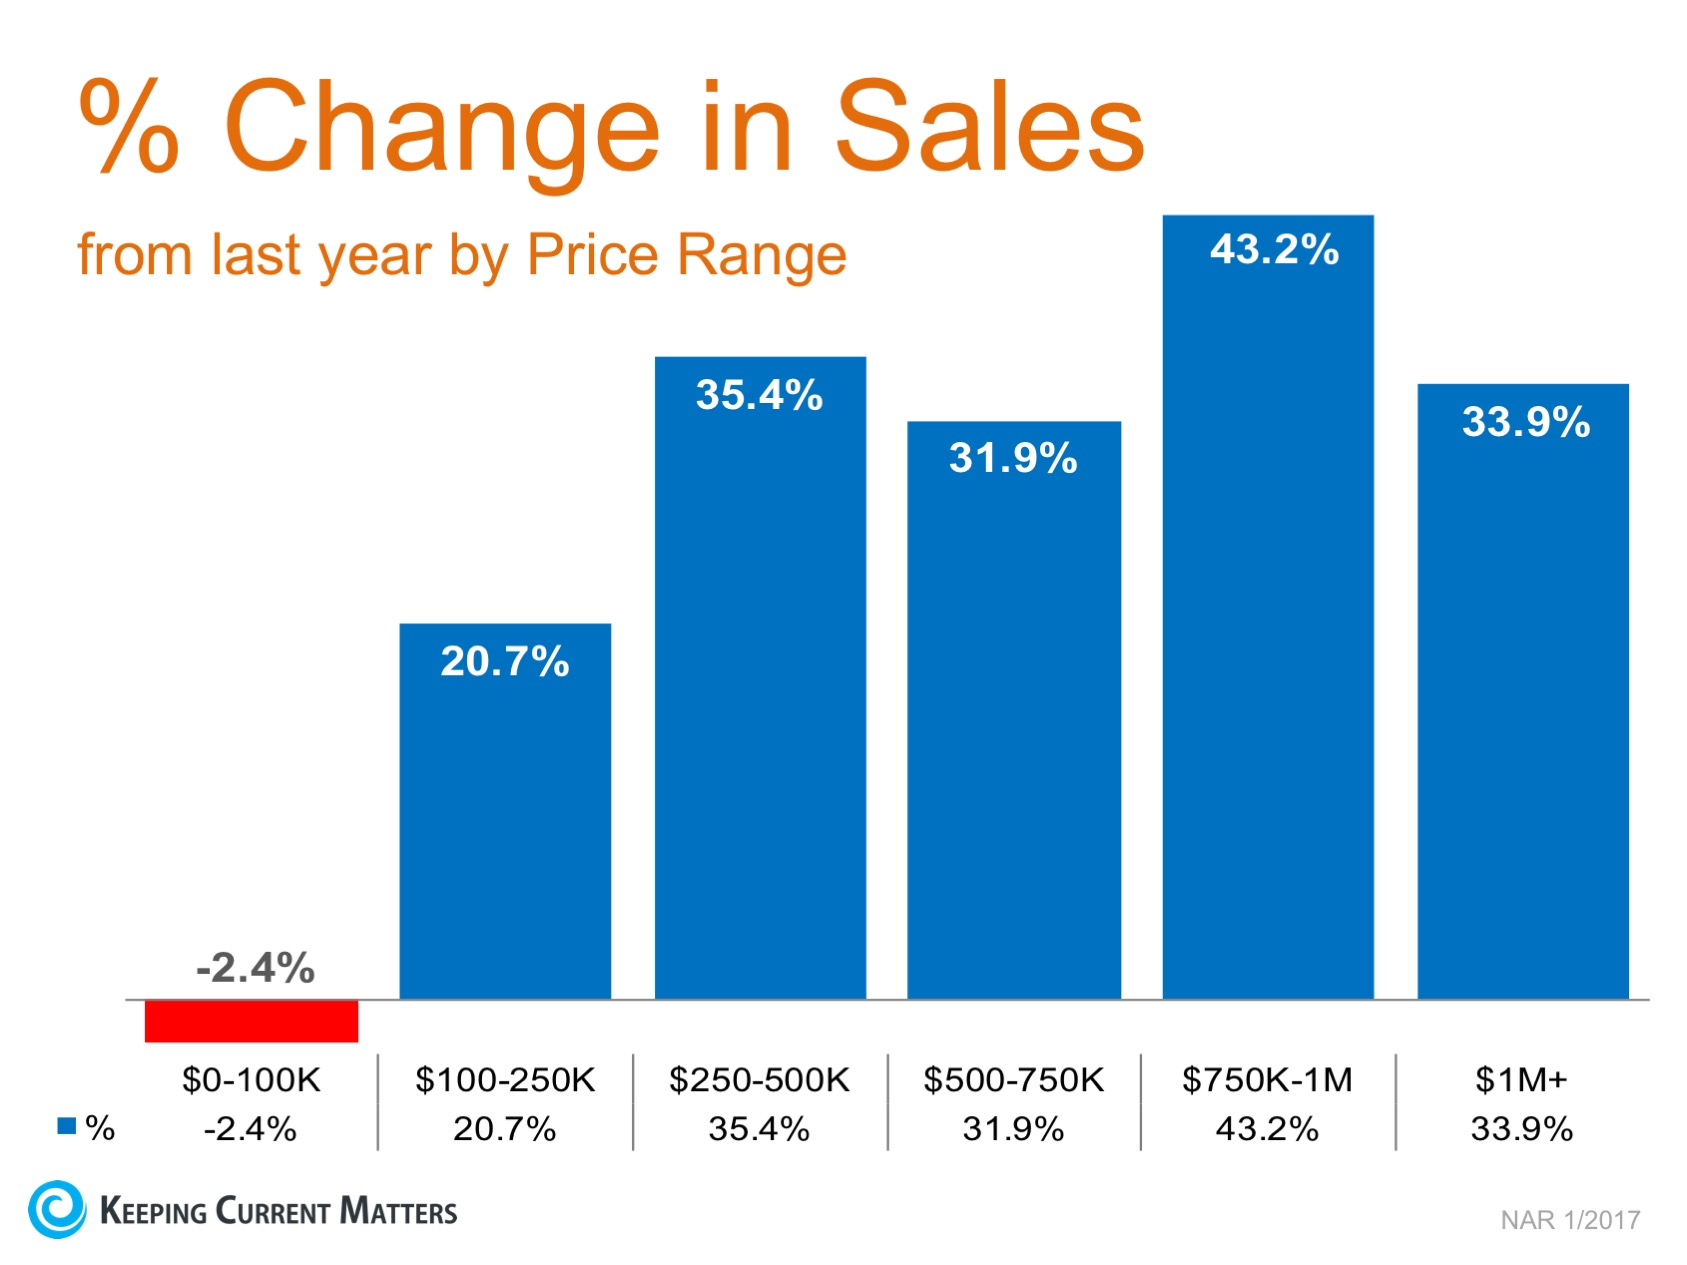 Year-Over-Year Price Appreciation Reaches Double Digits in 5 Price Categories | Keeping Current Matters